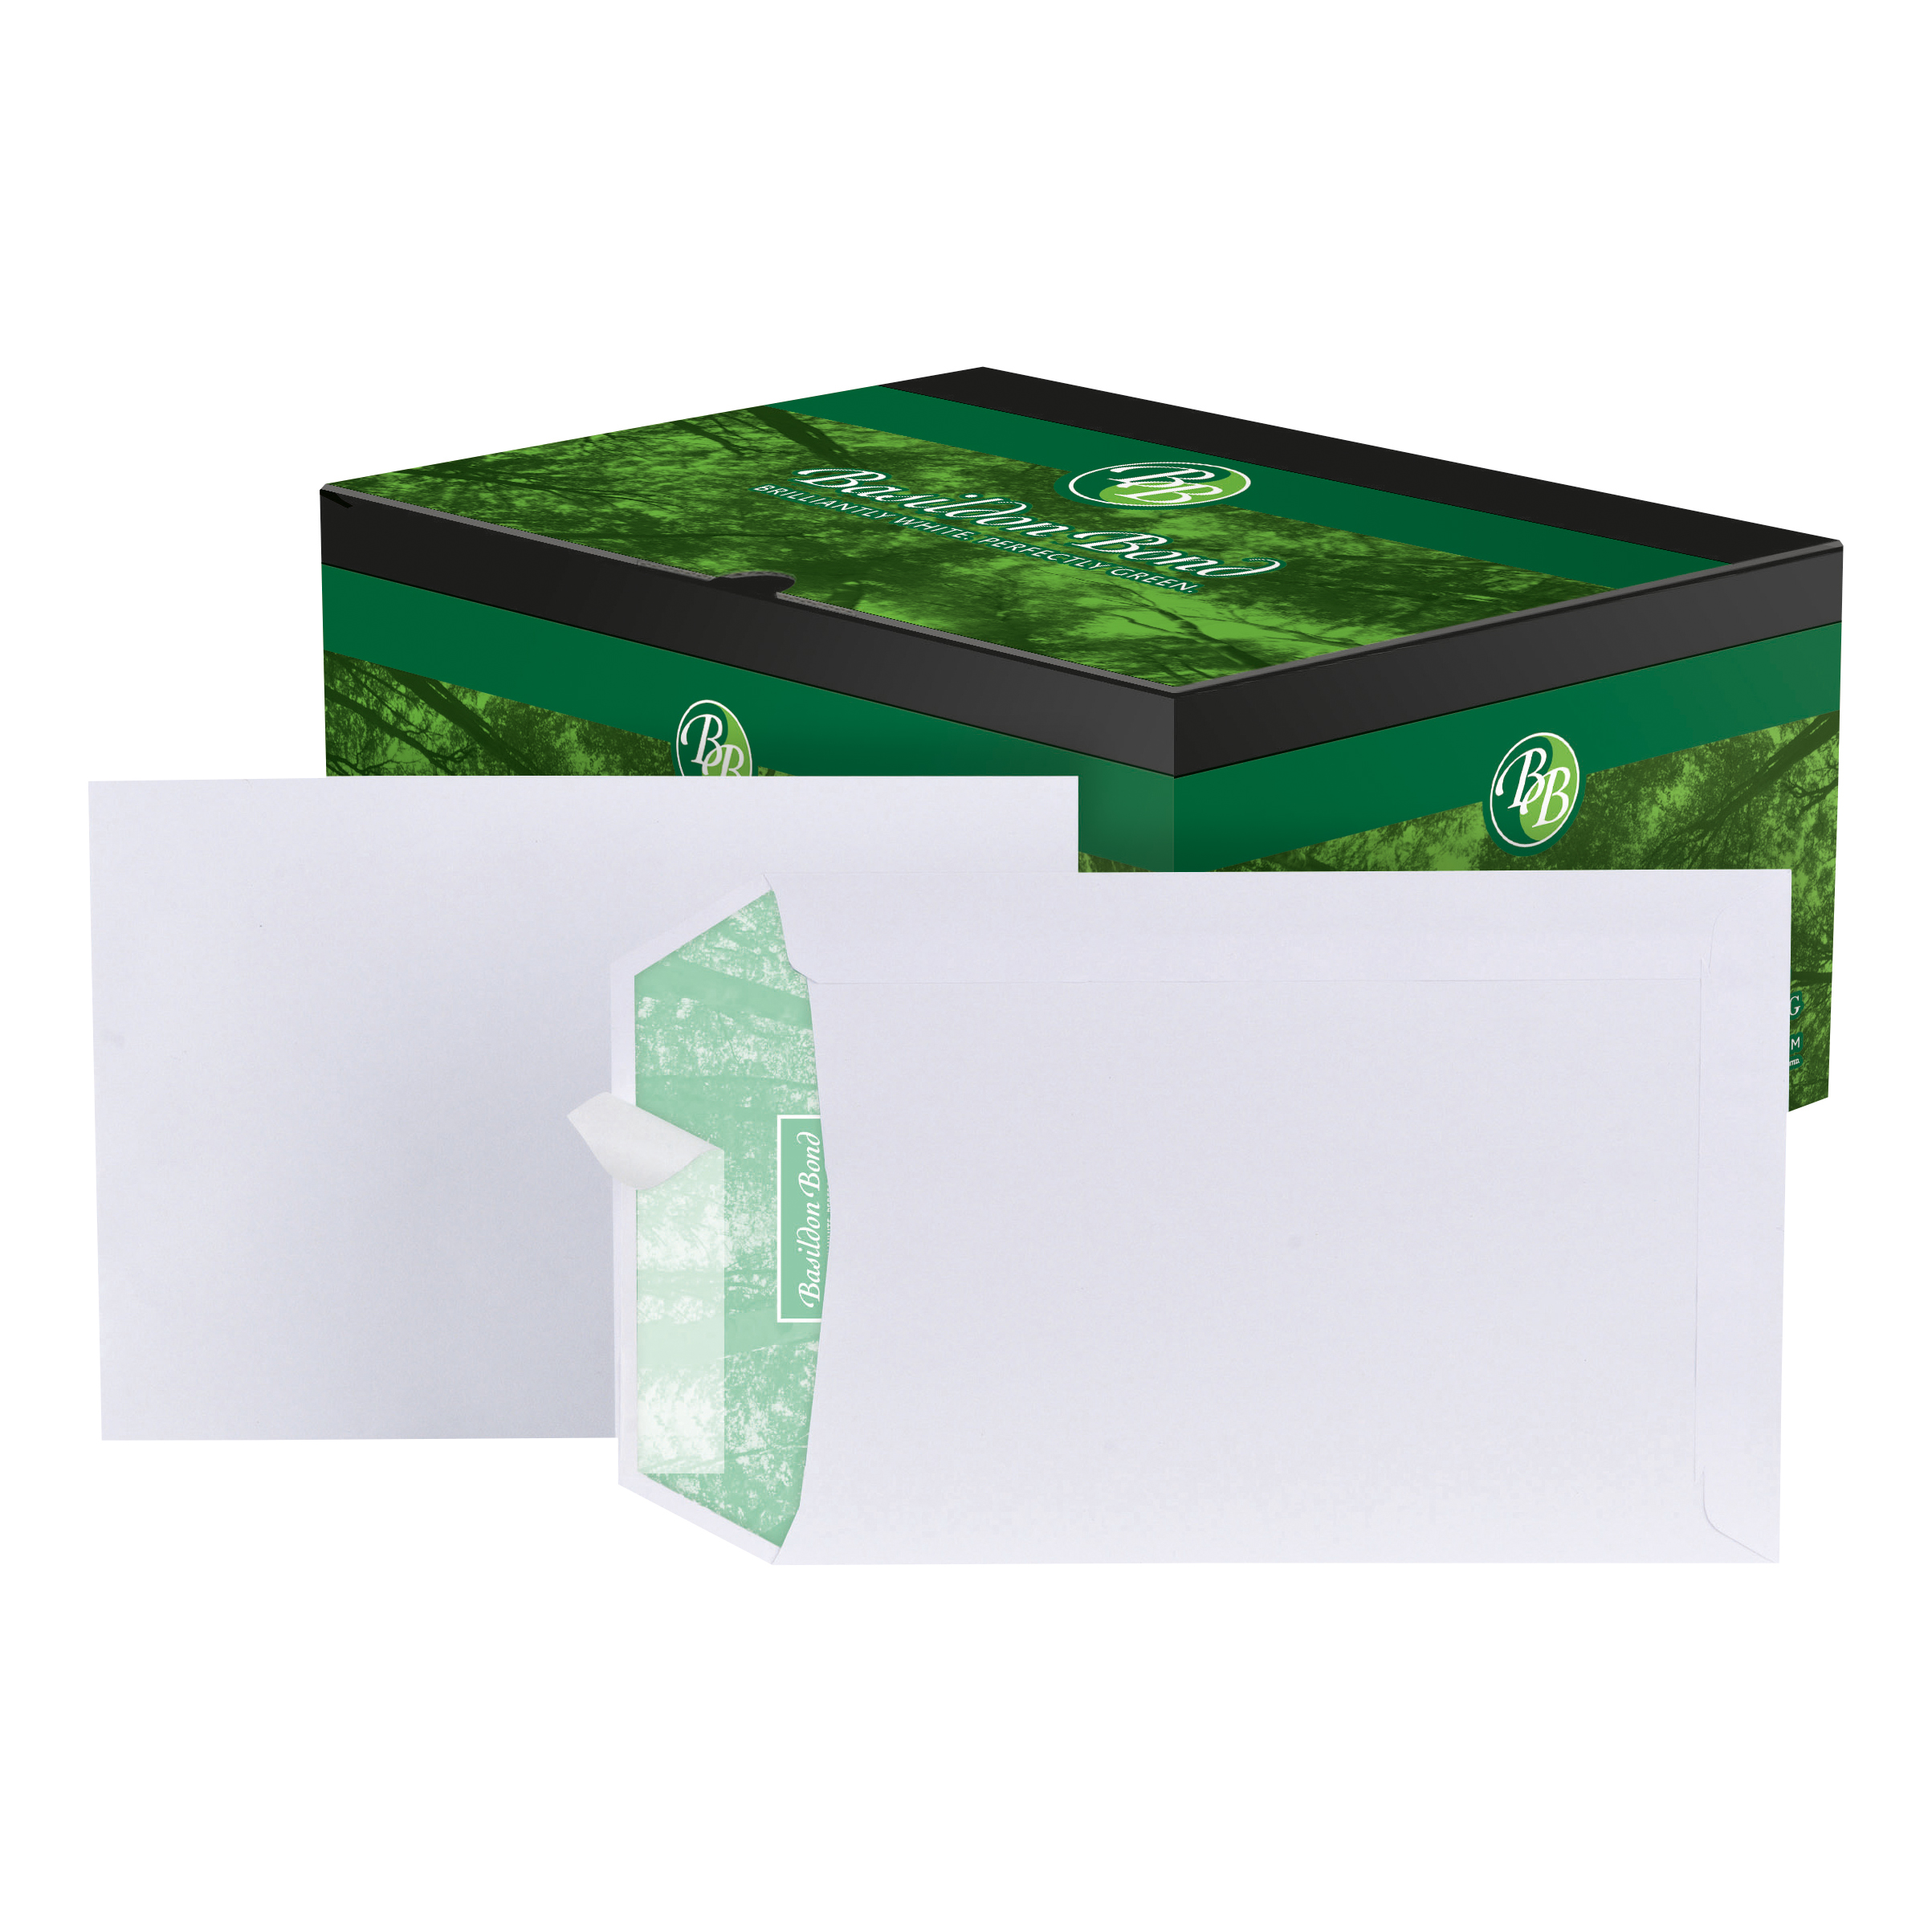 Basildon Bond Envelopes C5 Recycled Pocket Peel and Seal 120gsm White Ref L80118 Pack 500 PRIZE DRAW